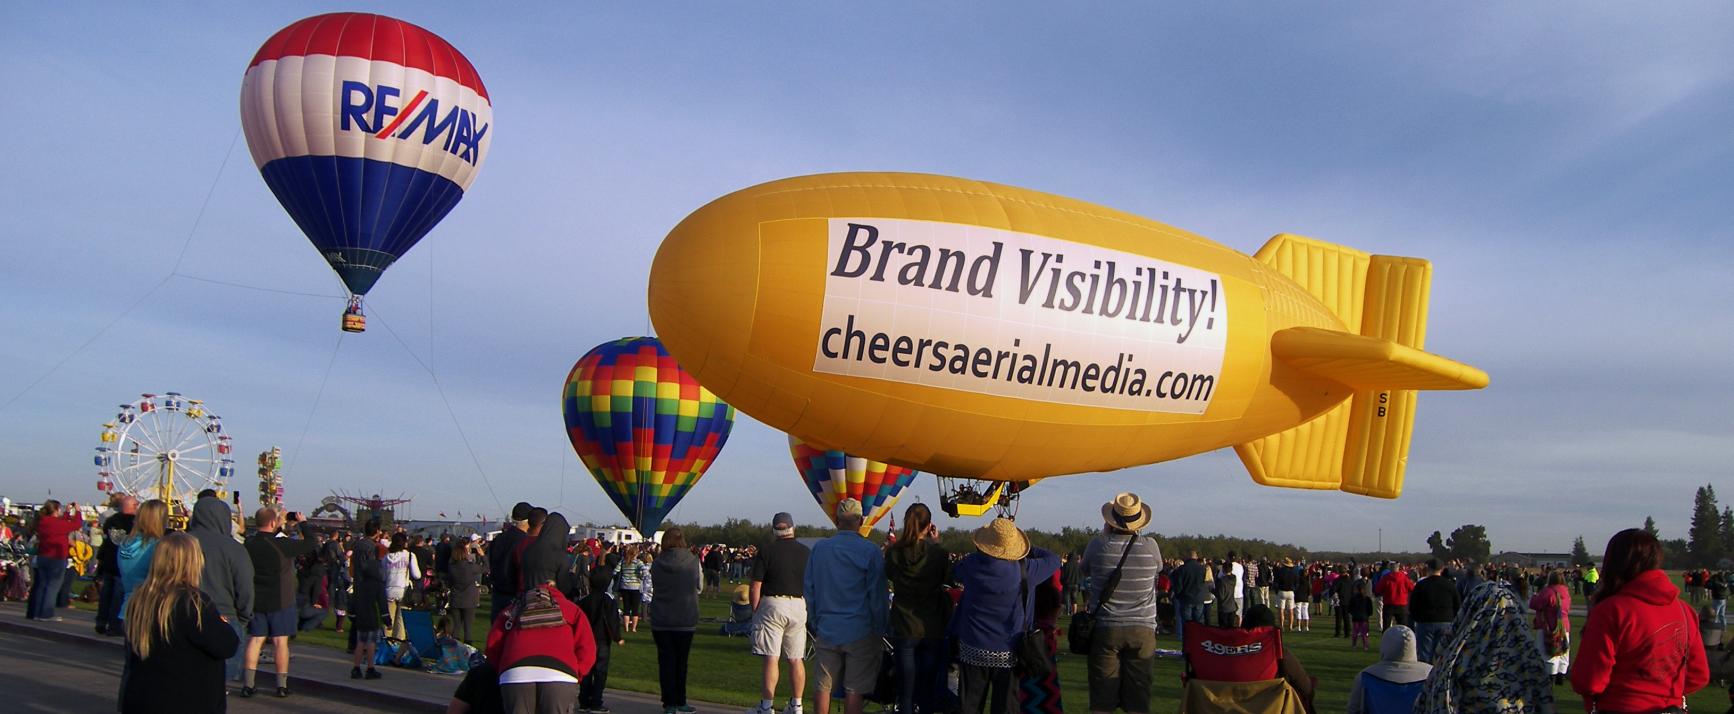 Amelia Airship with RE/MAX Balloon - Cheers Over California